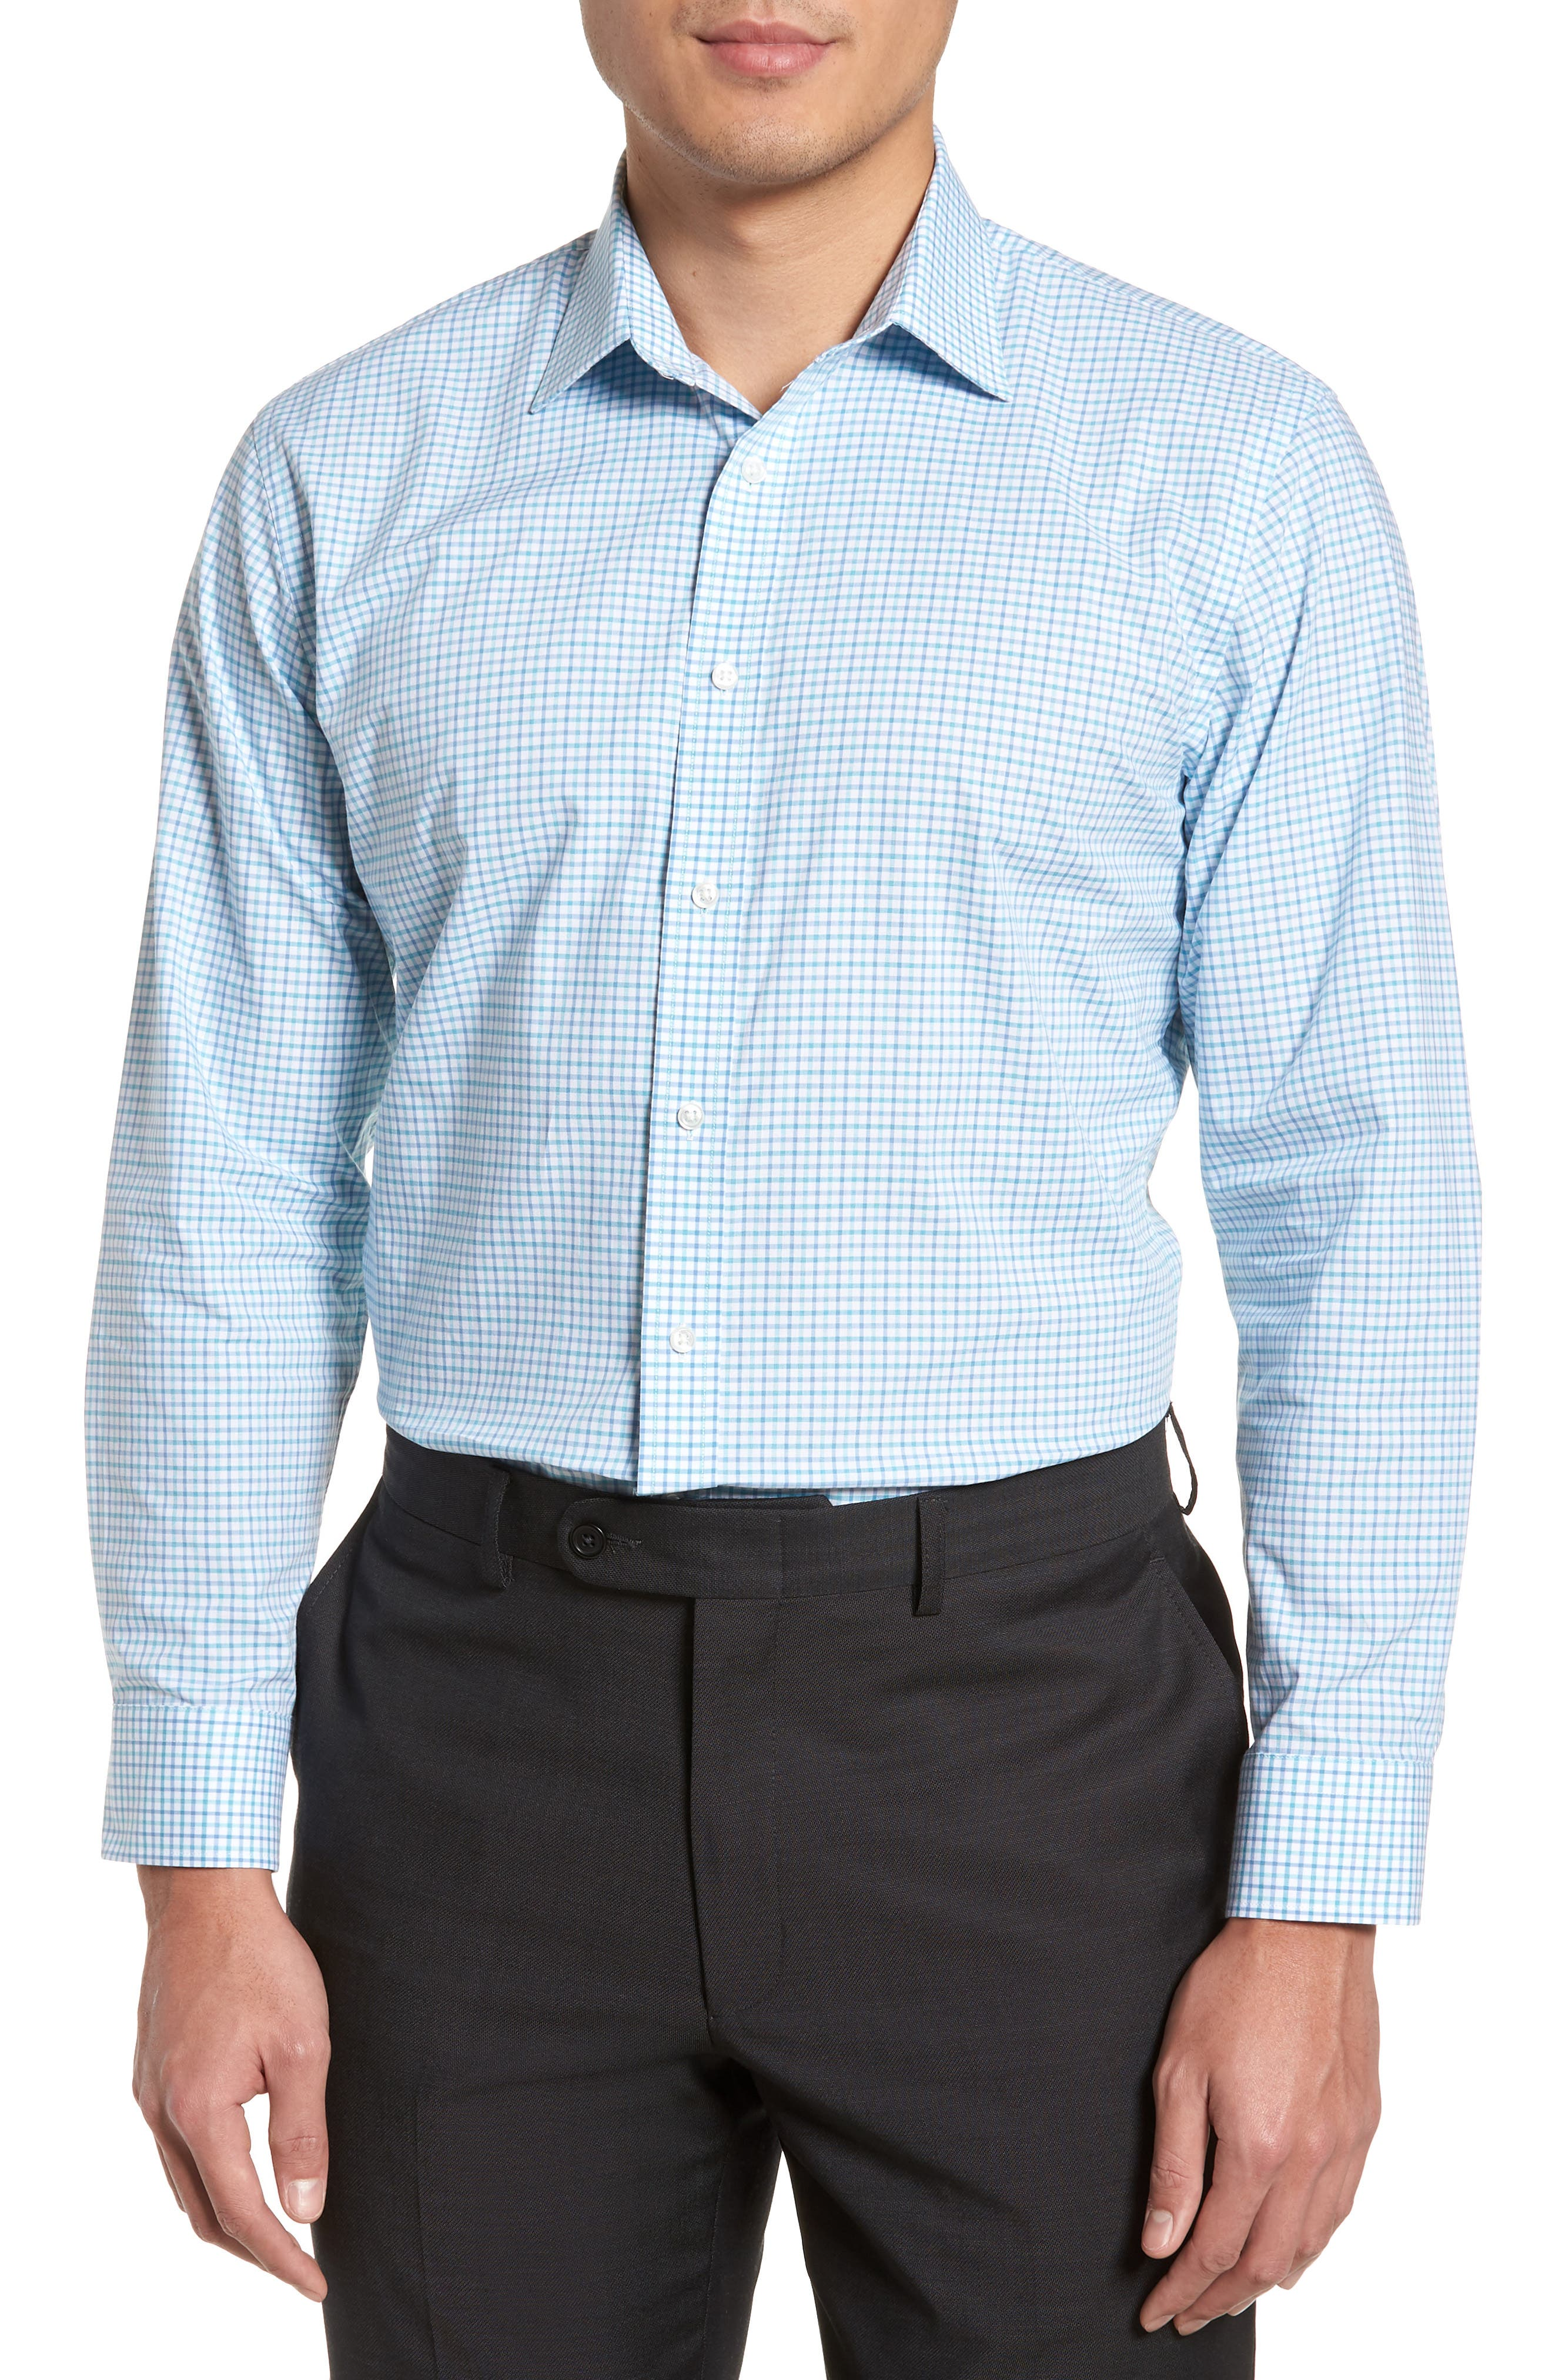 Main Image - Nordstrom Men's Shop Trim Fit Check Dress Shirt